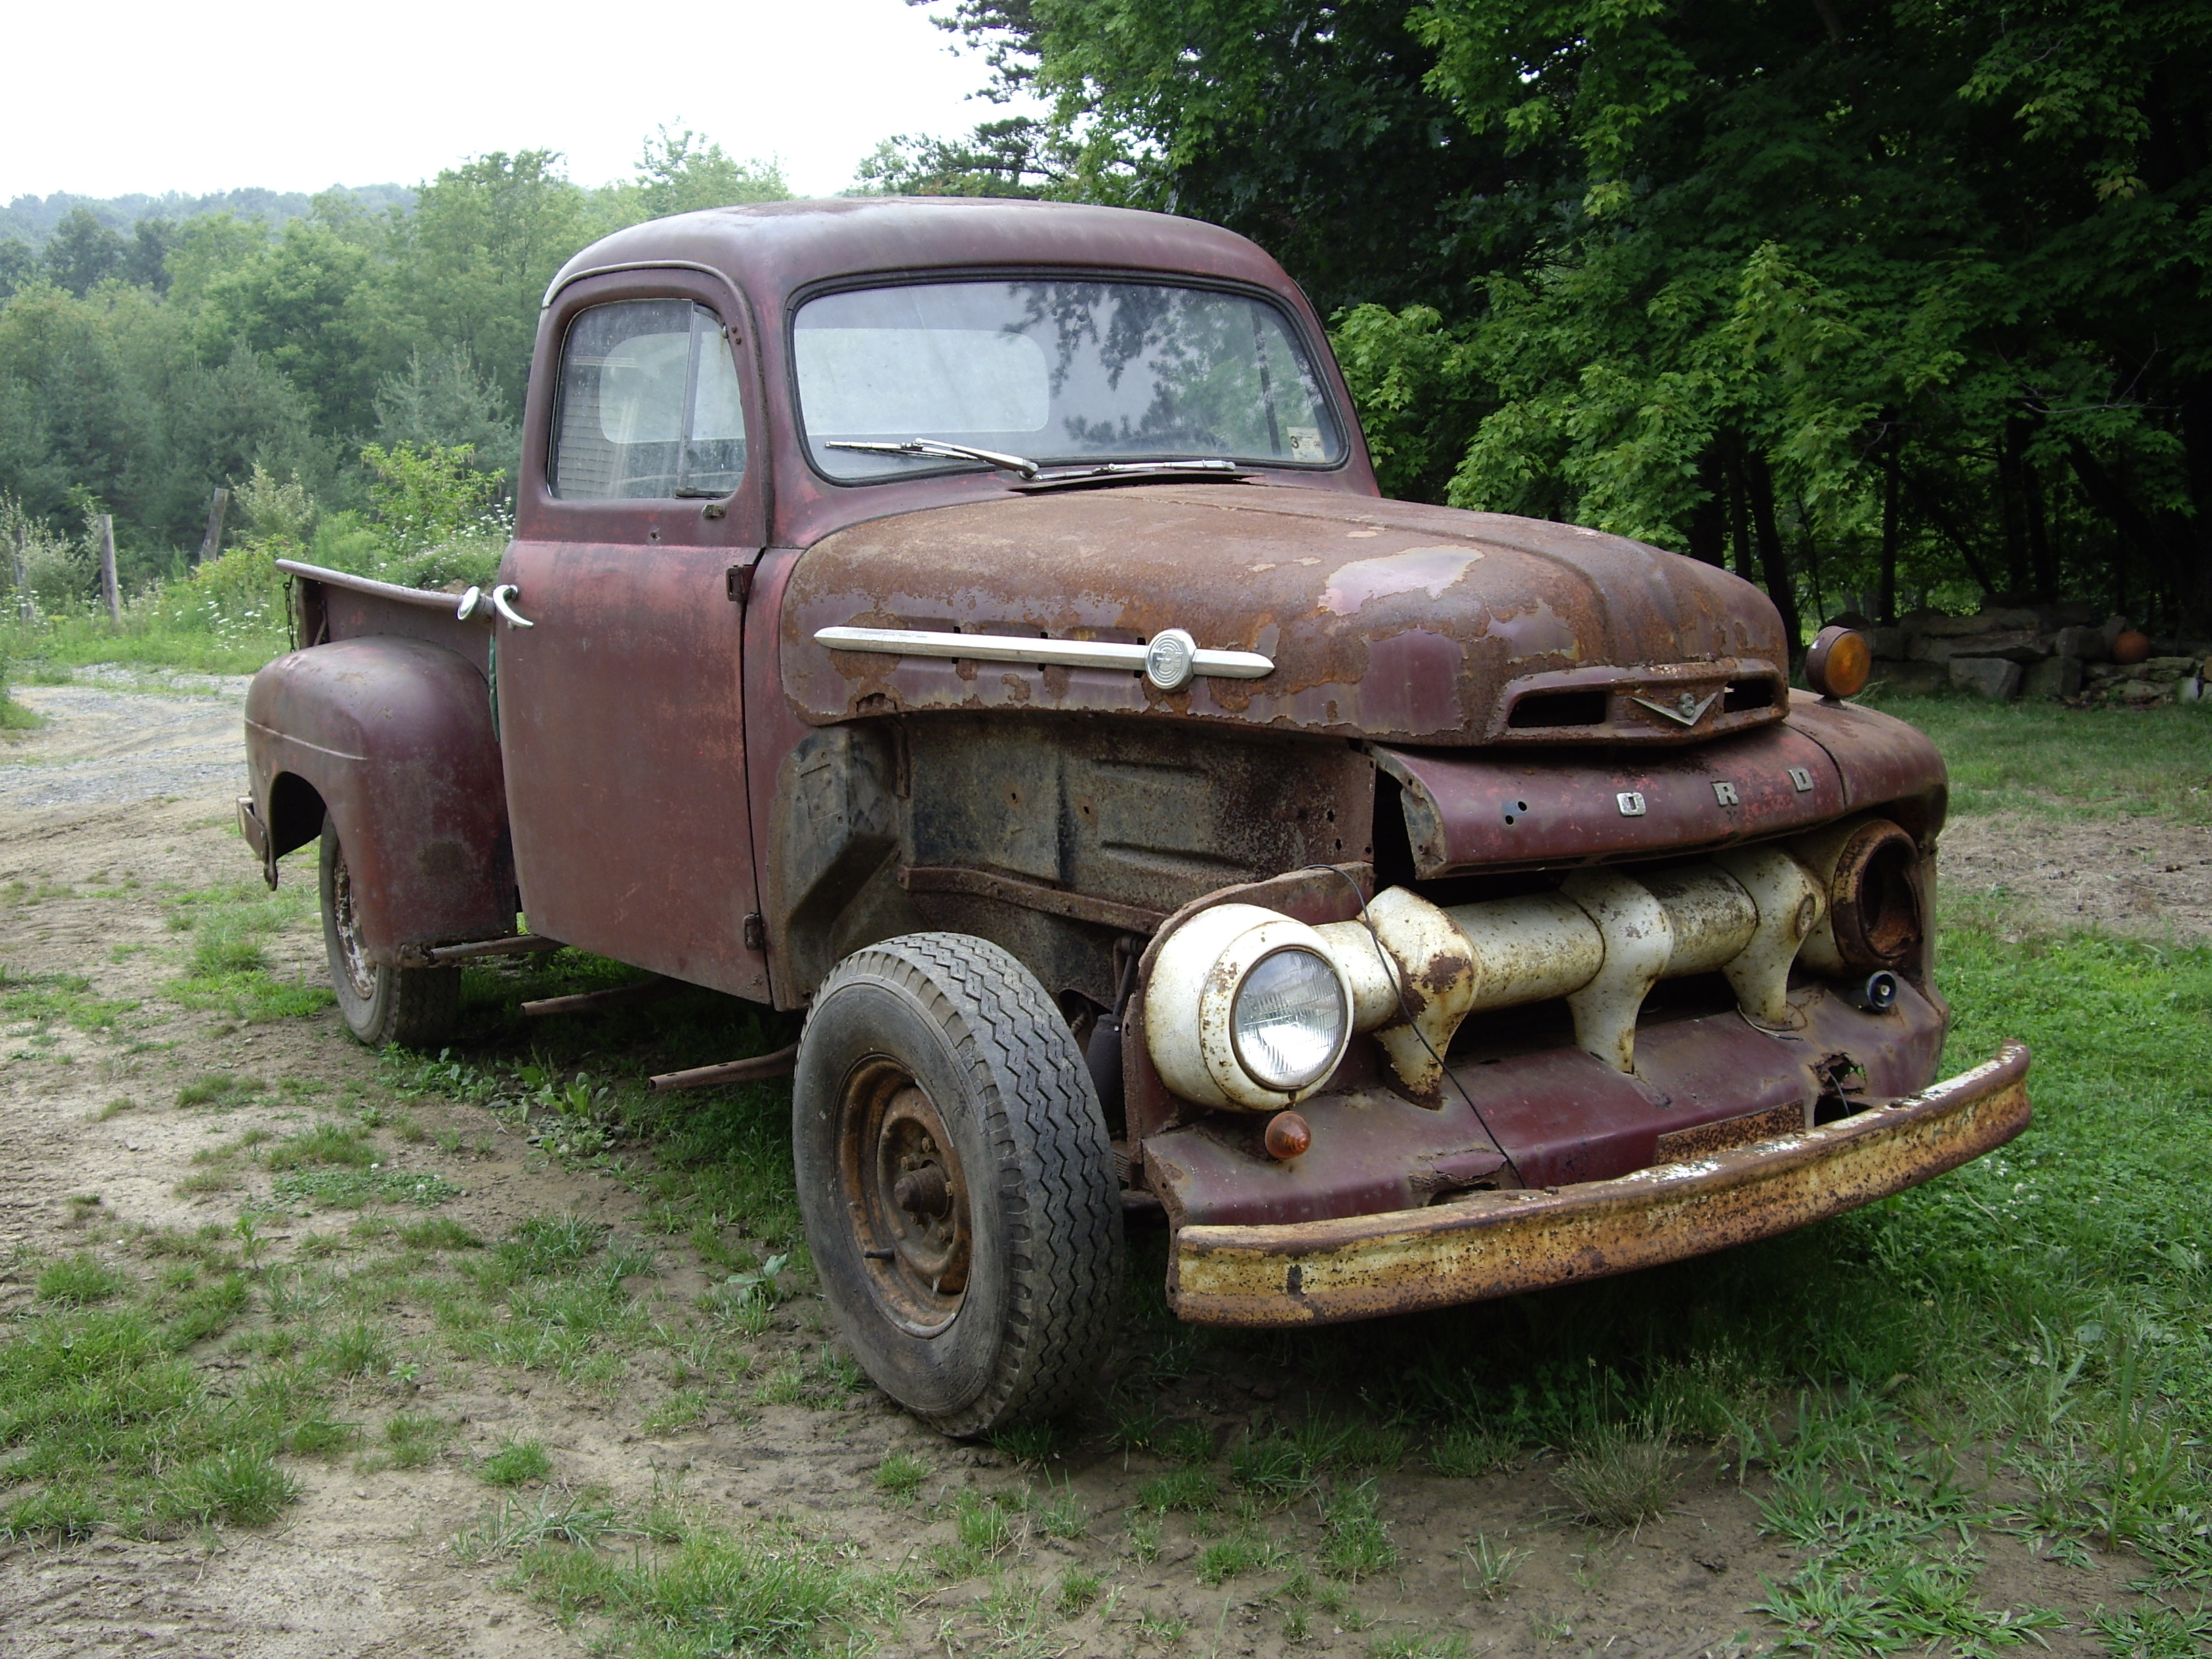 A Great Old Truck